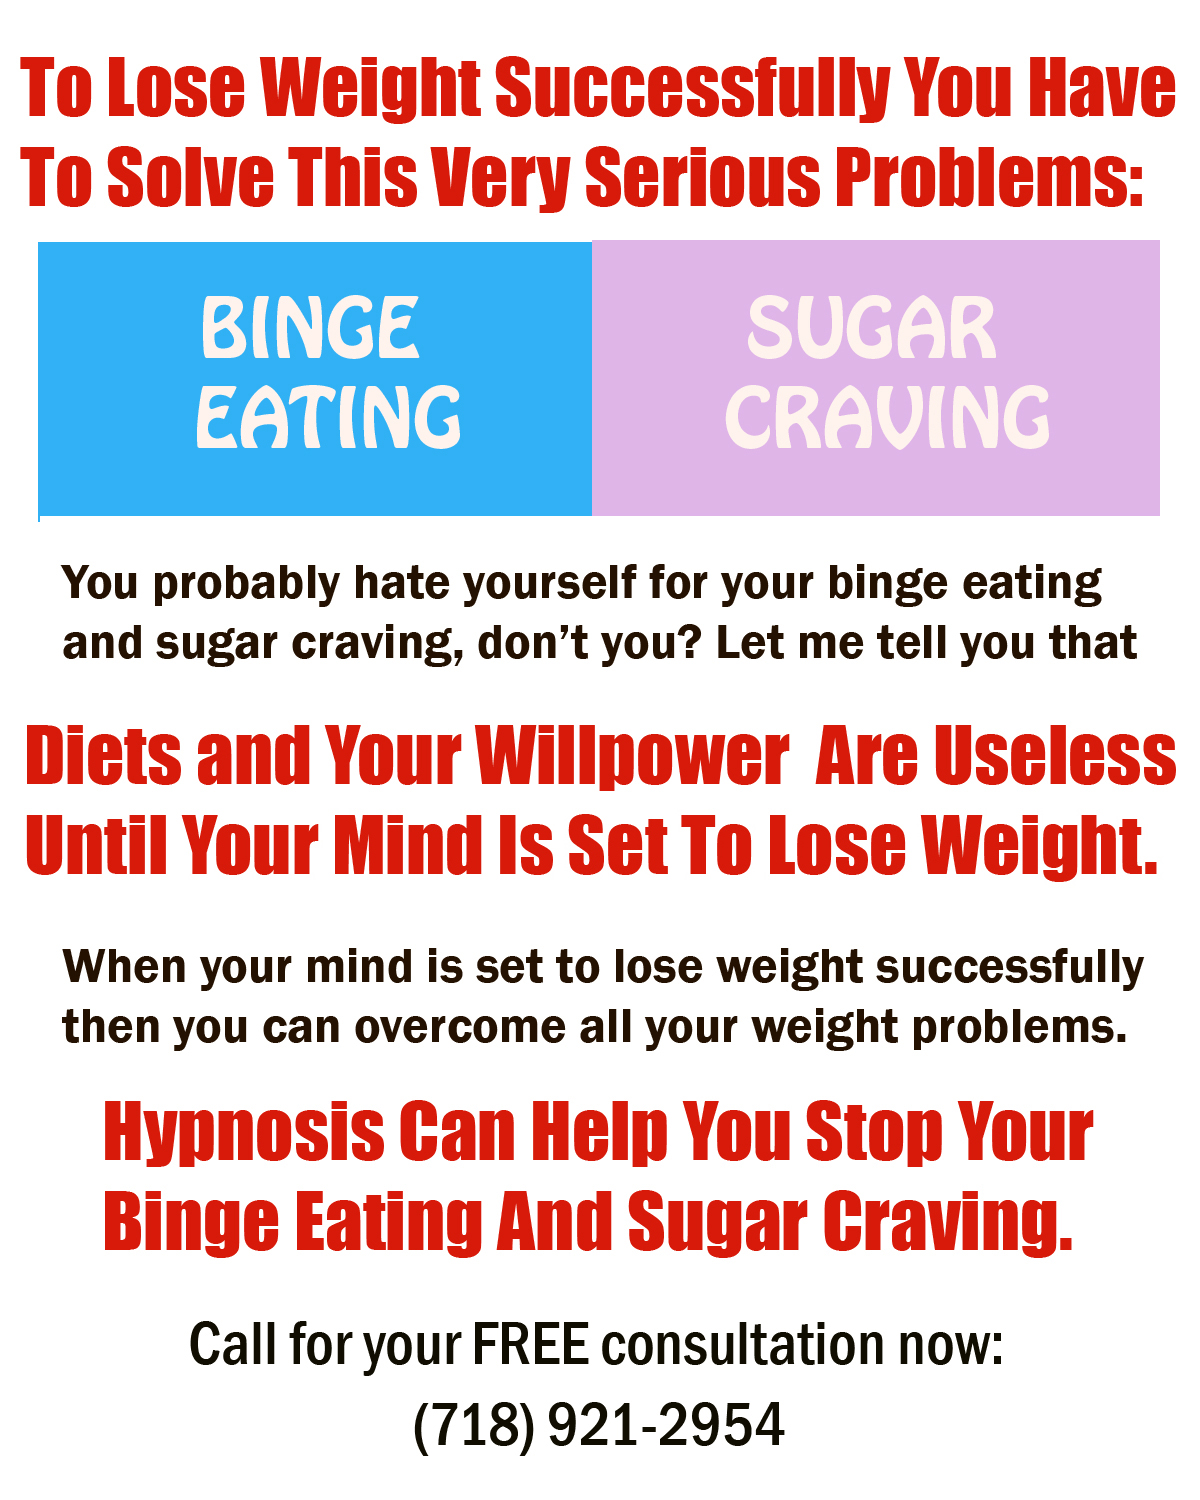 lose weight with hypnosis in nyc Archives - NYC Hypnosis: (718) 921-2954